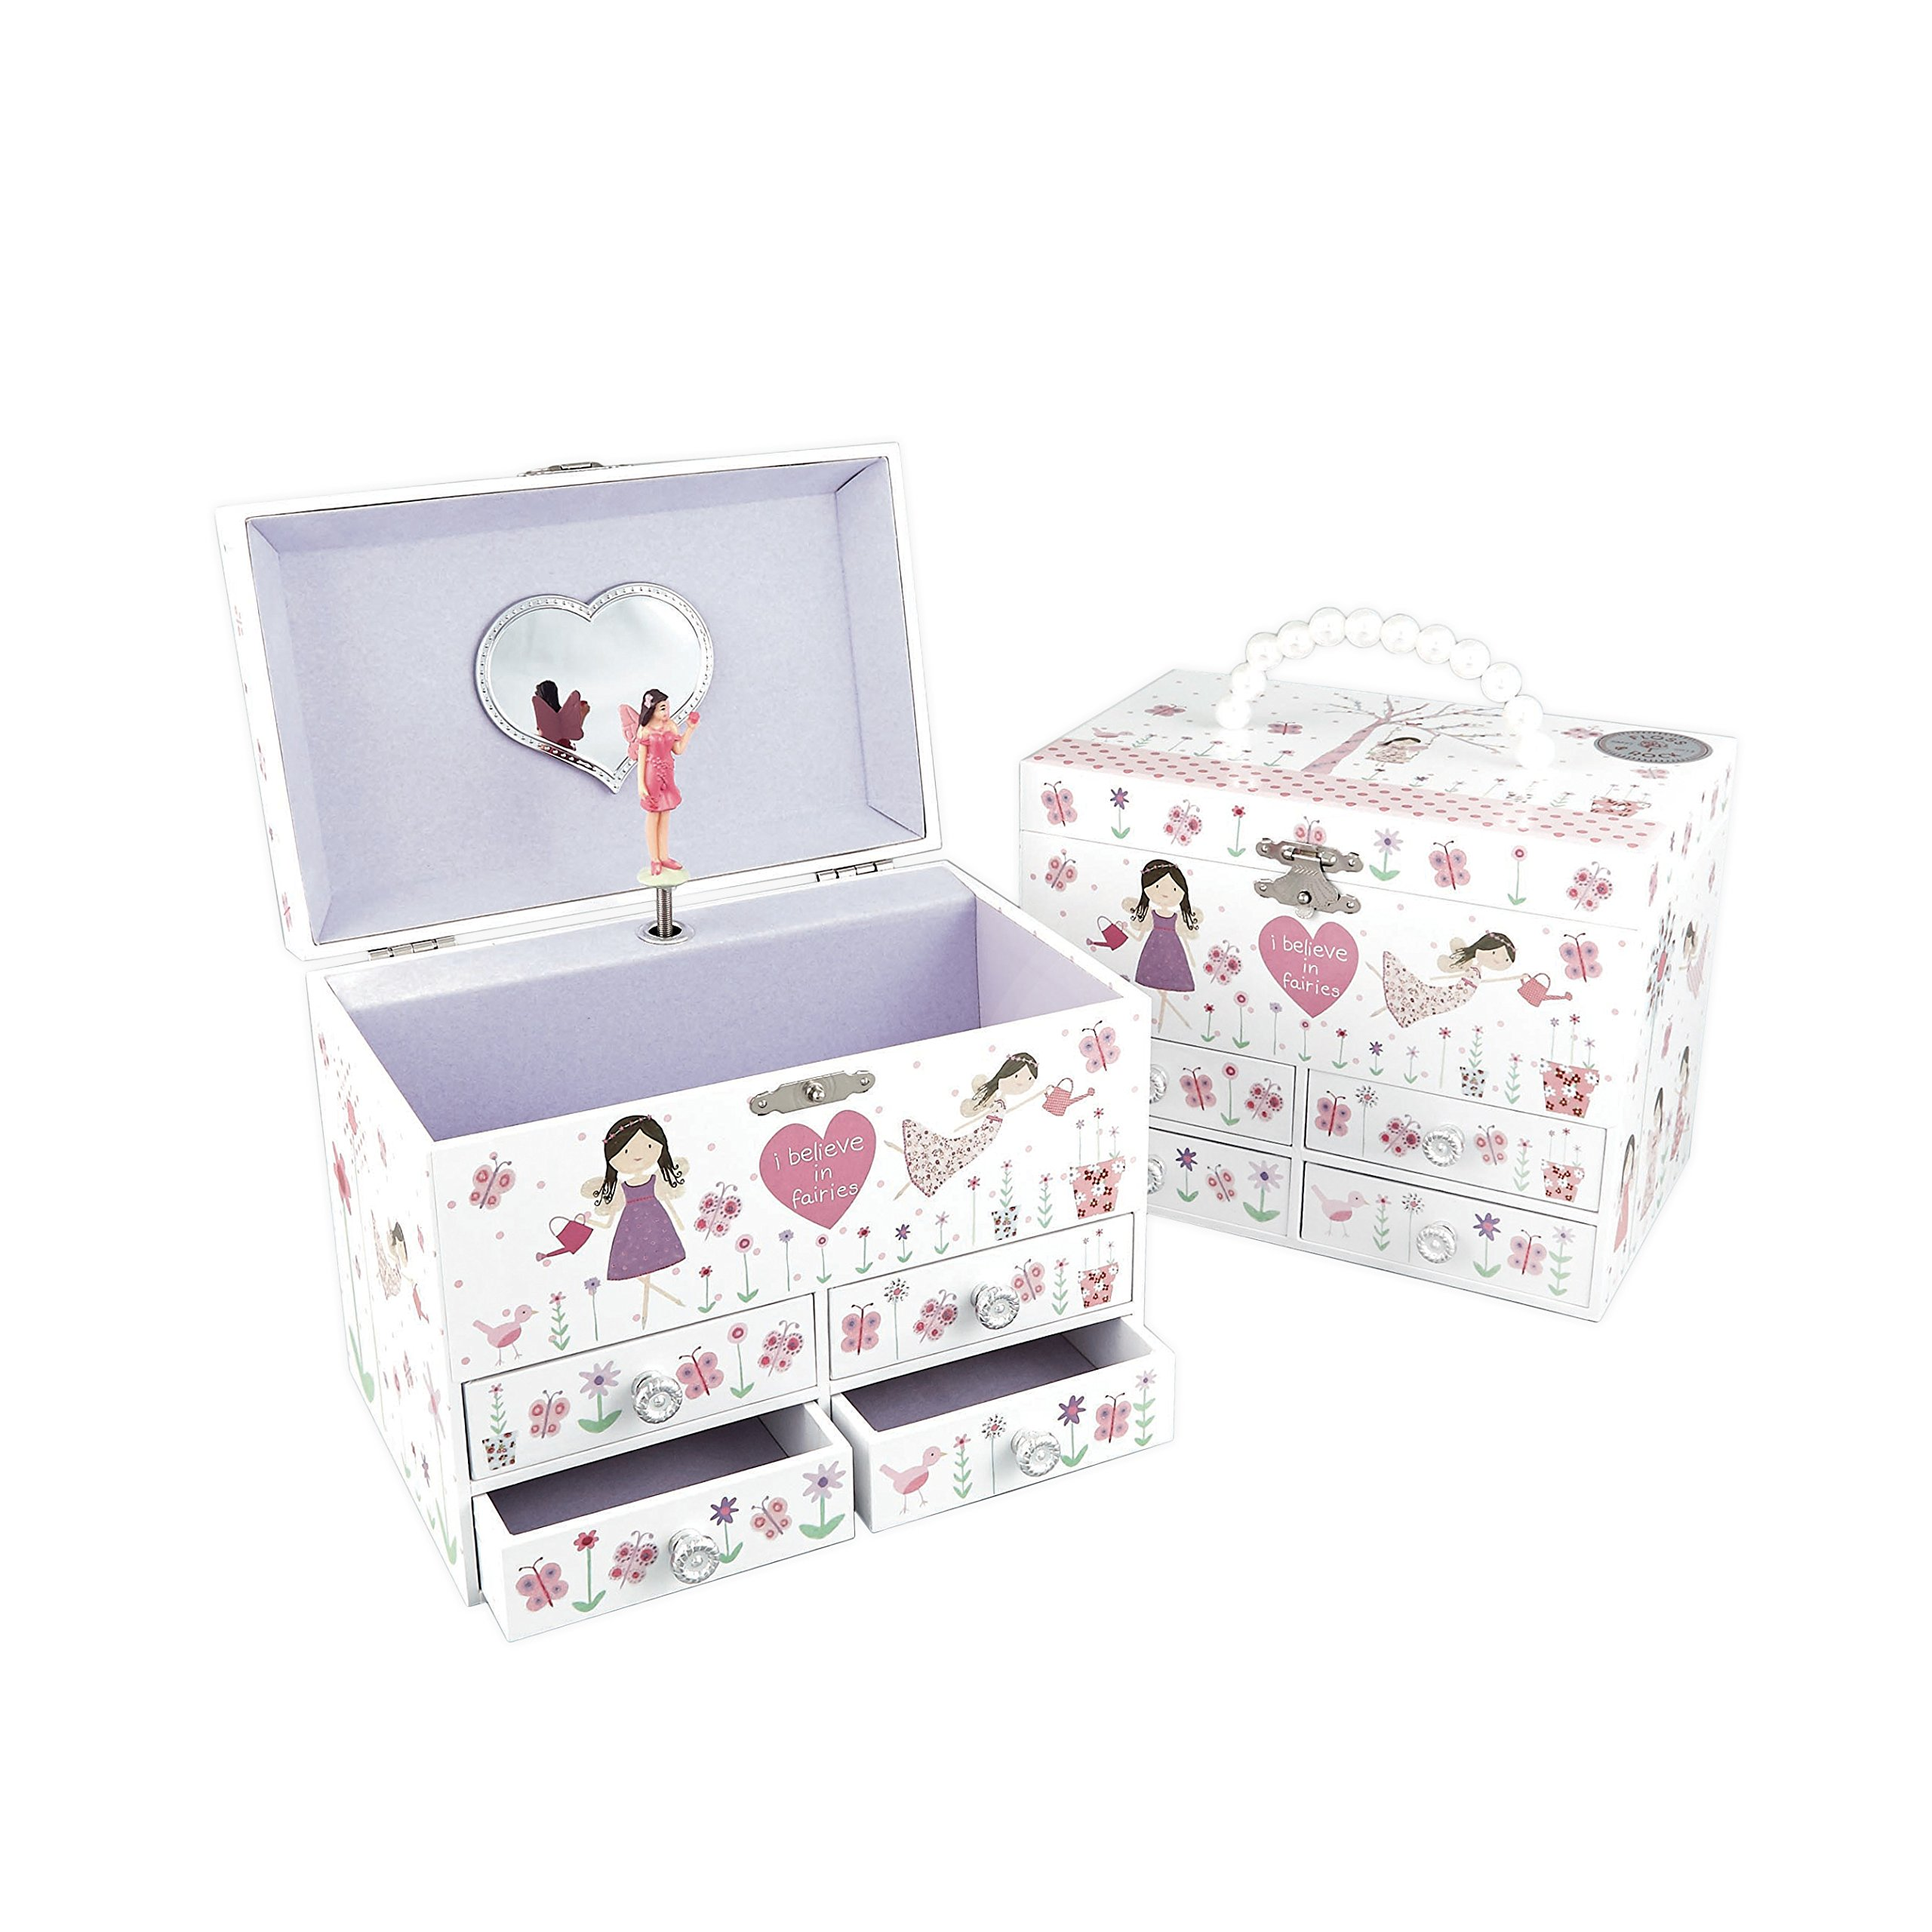 Dancing Fairy Blossom Musical Drawer Large Kids Jewelry Box Plays Waltz of the Flowers